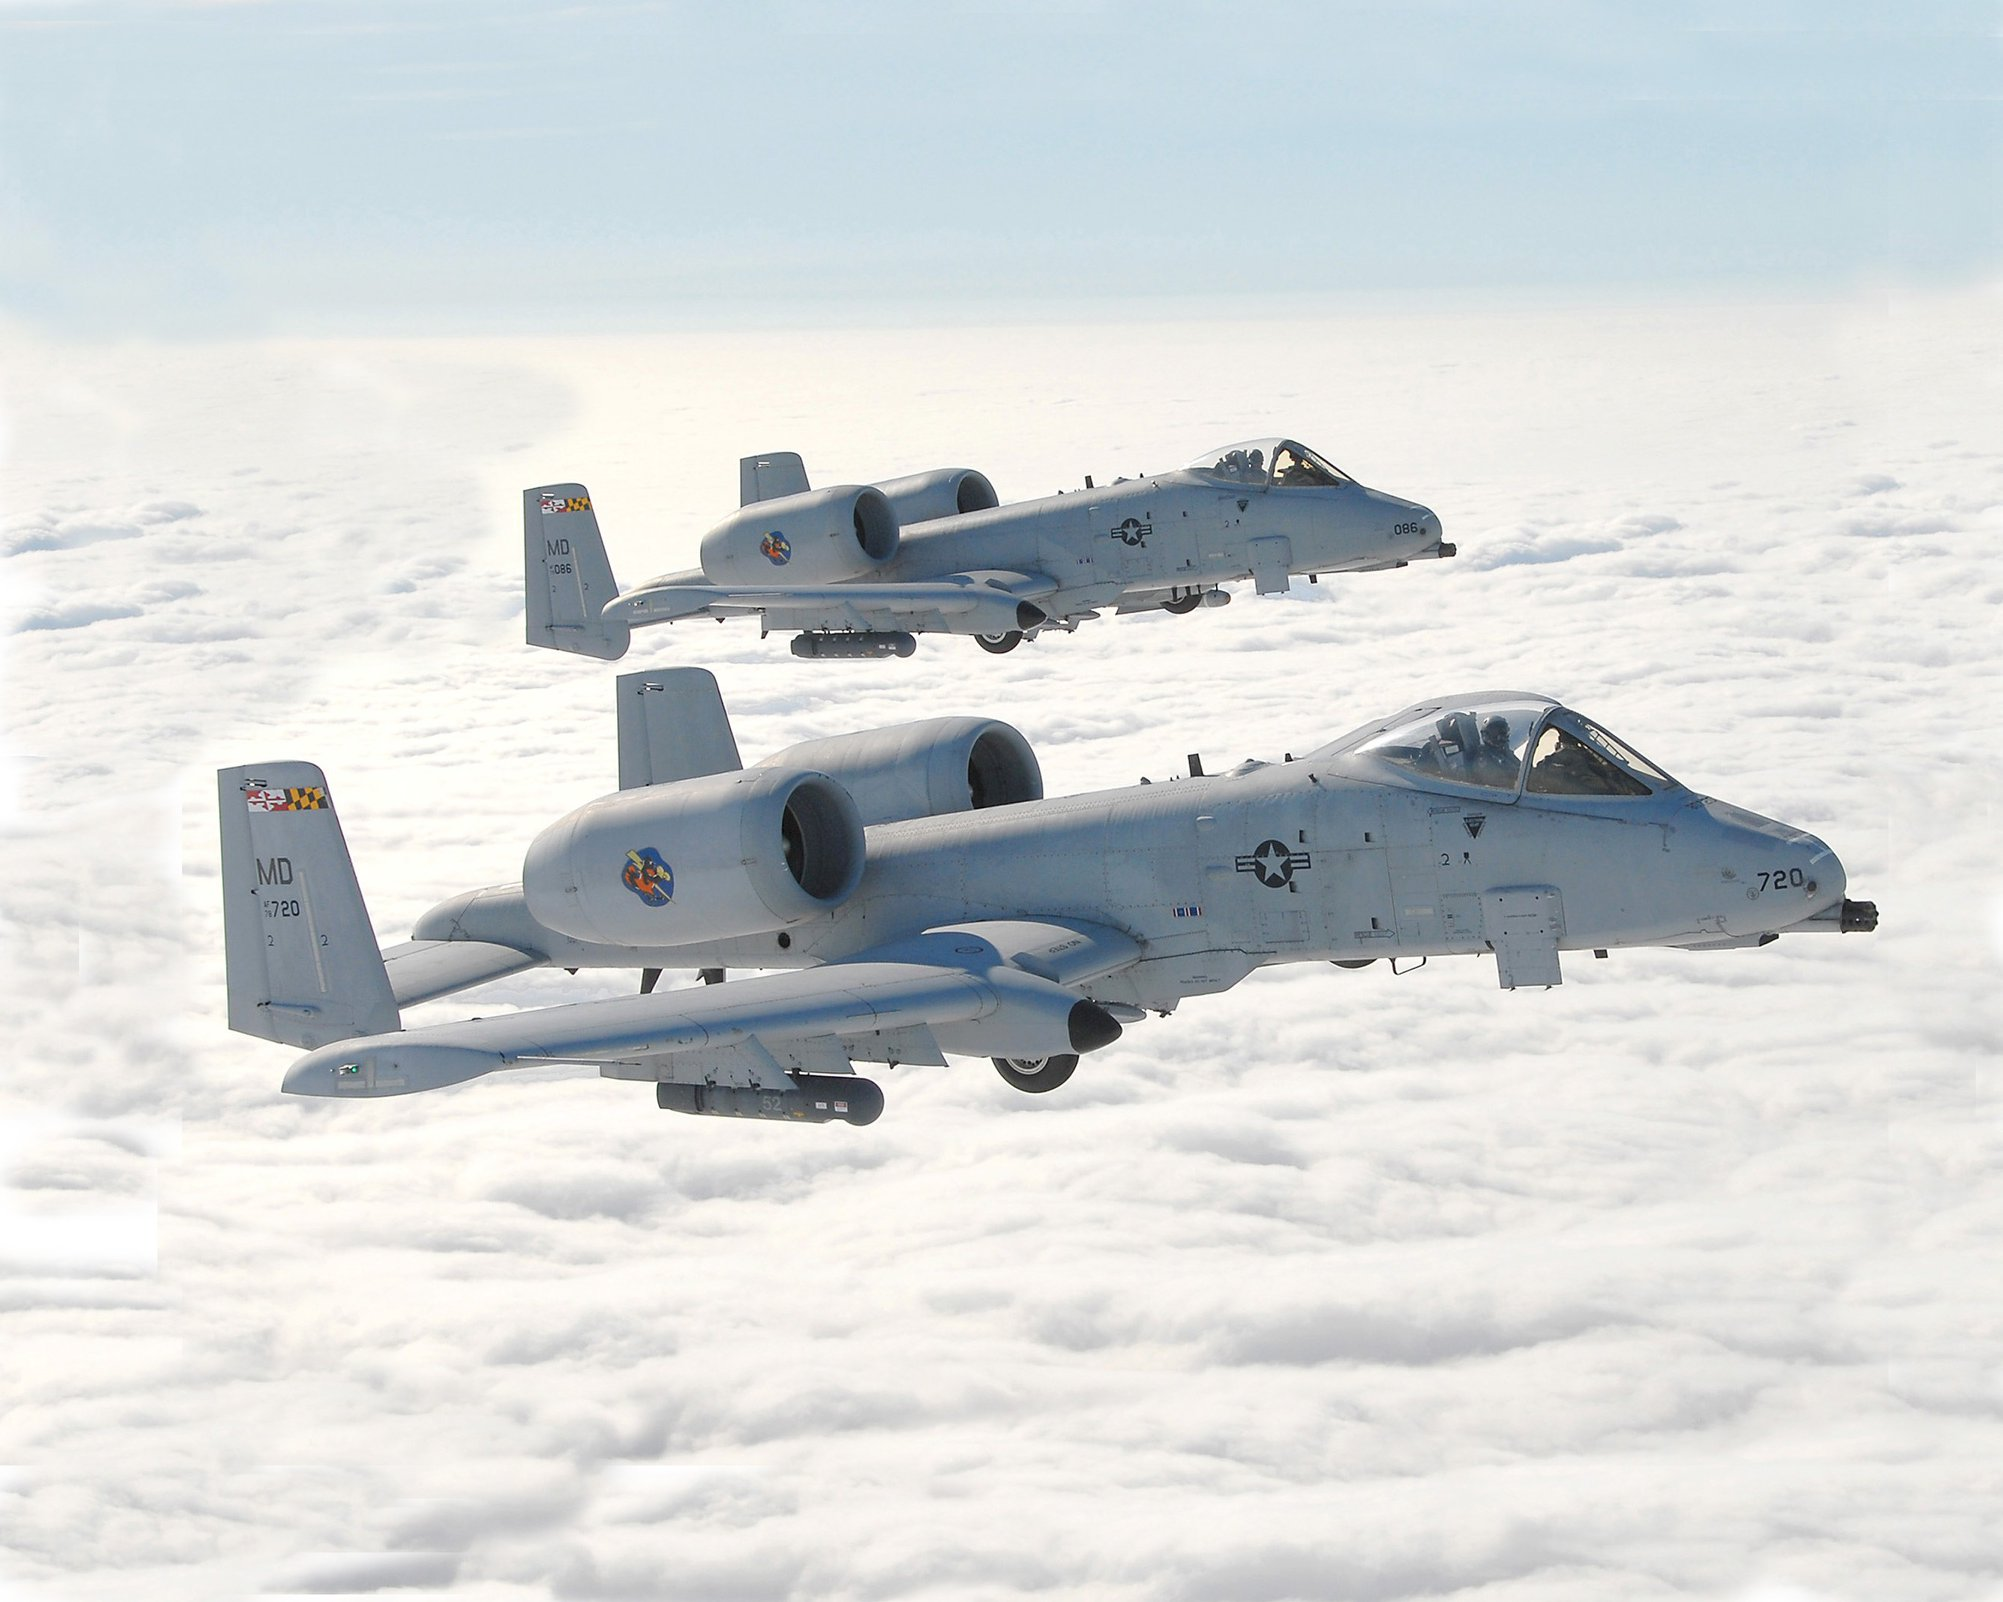 2 Hours Before Game, A-10s To Fly Over Campus Twice